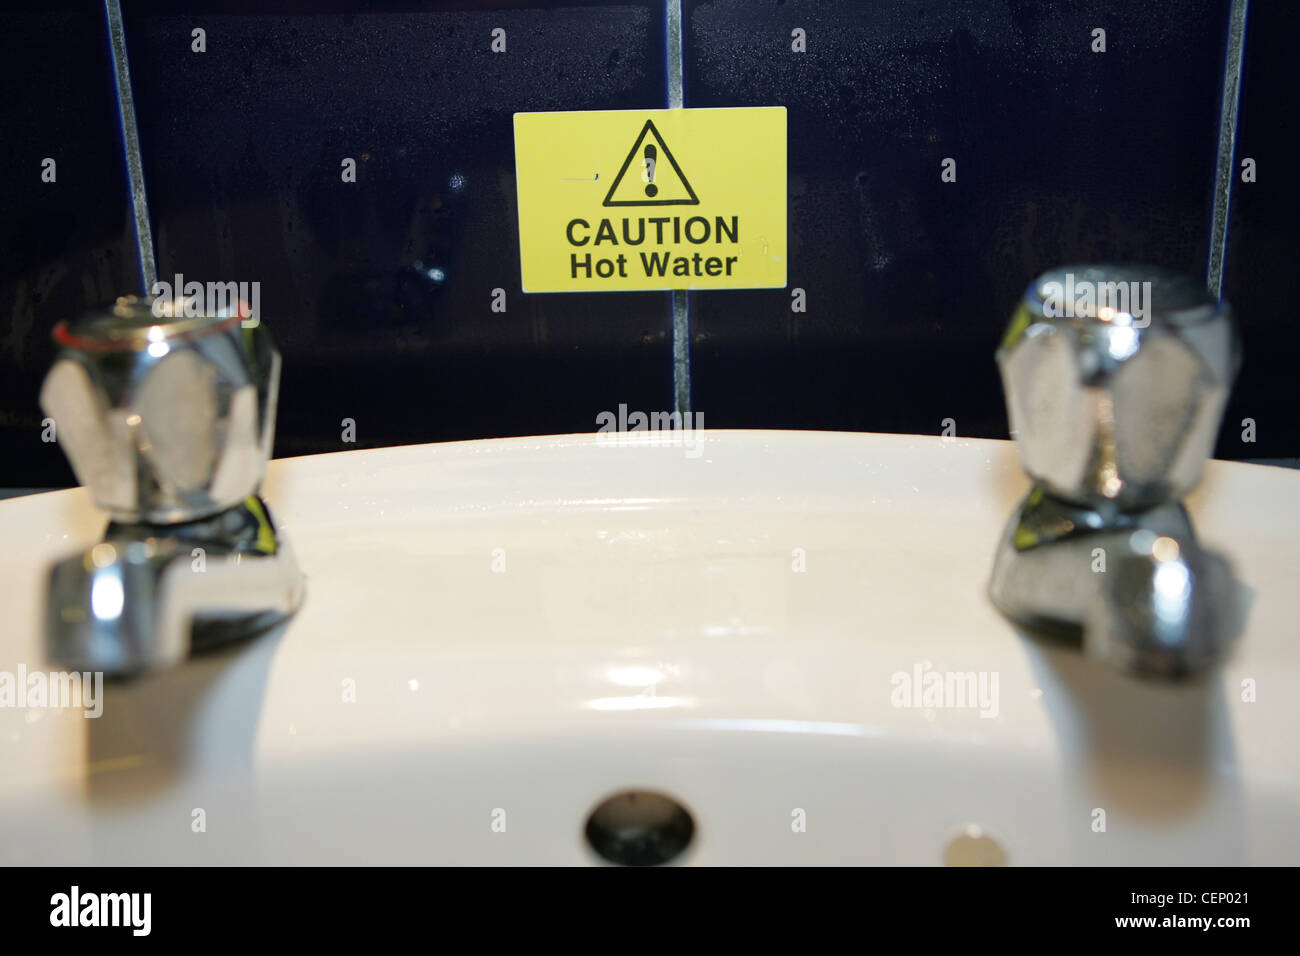 caution hot water sign in uk hotel room - Stock Image